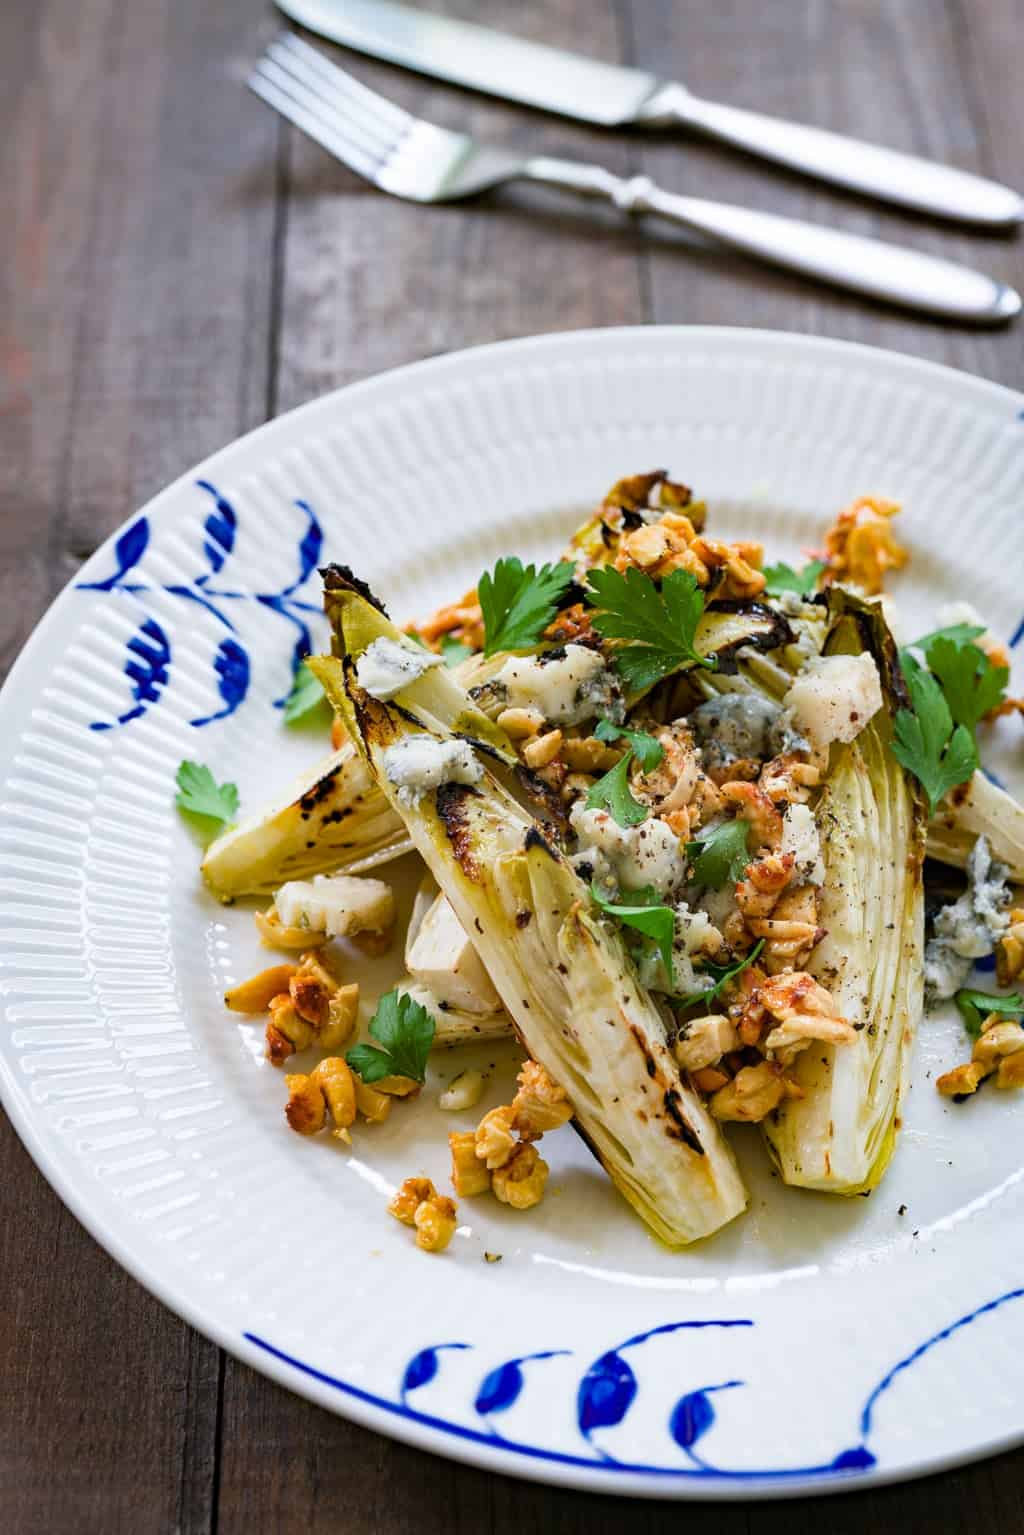 A delicious grilled endive salad with marinated char-grilled endives, honey roasted cashew nuts and gorgonzola cheese.